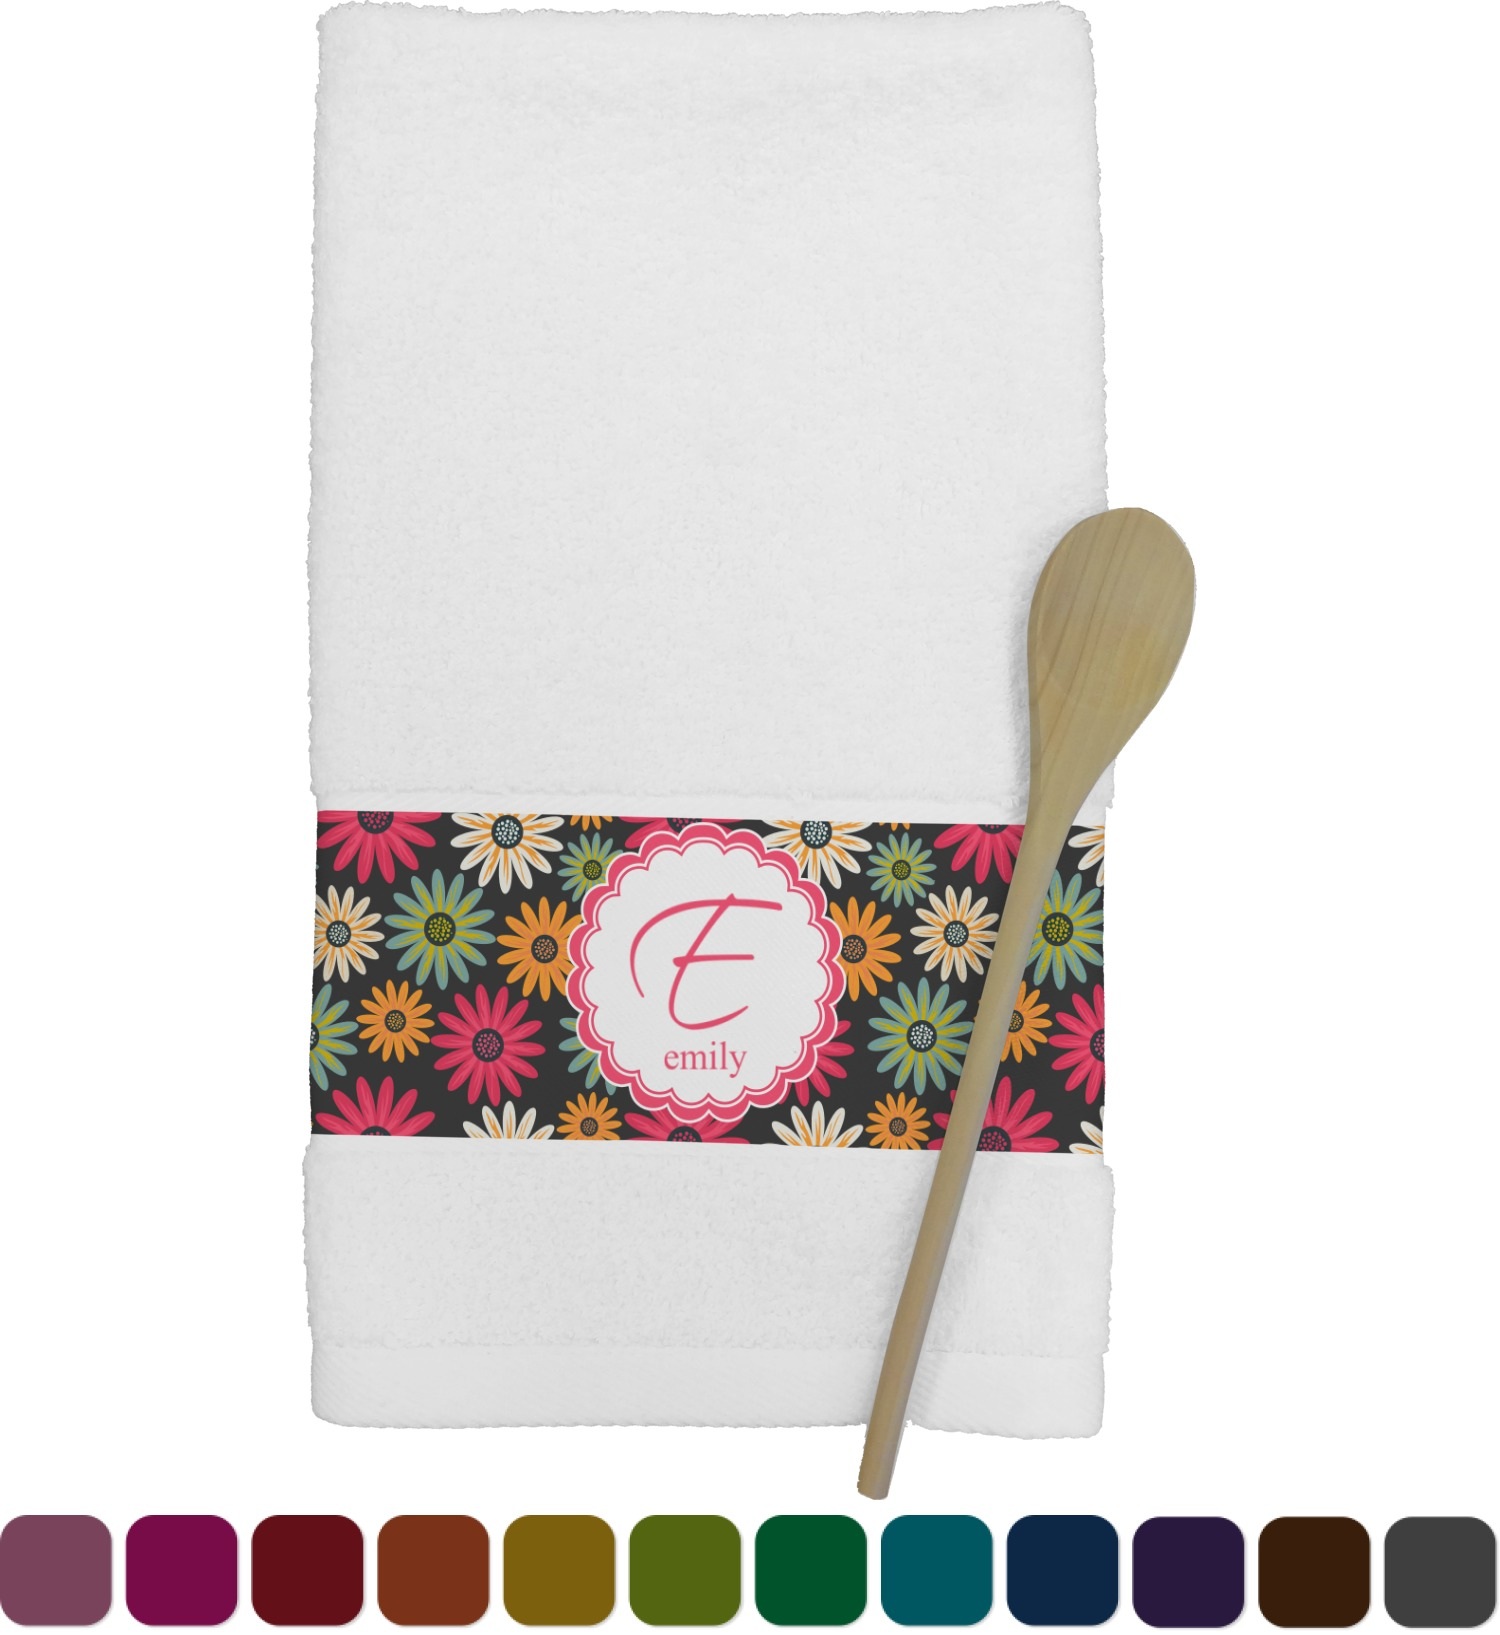 personalized kitchen towels how to remodel a daisies towel youcustomizeit